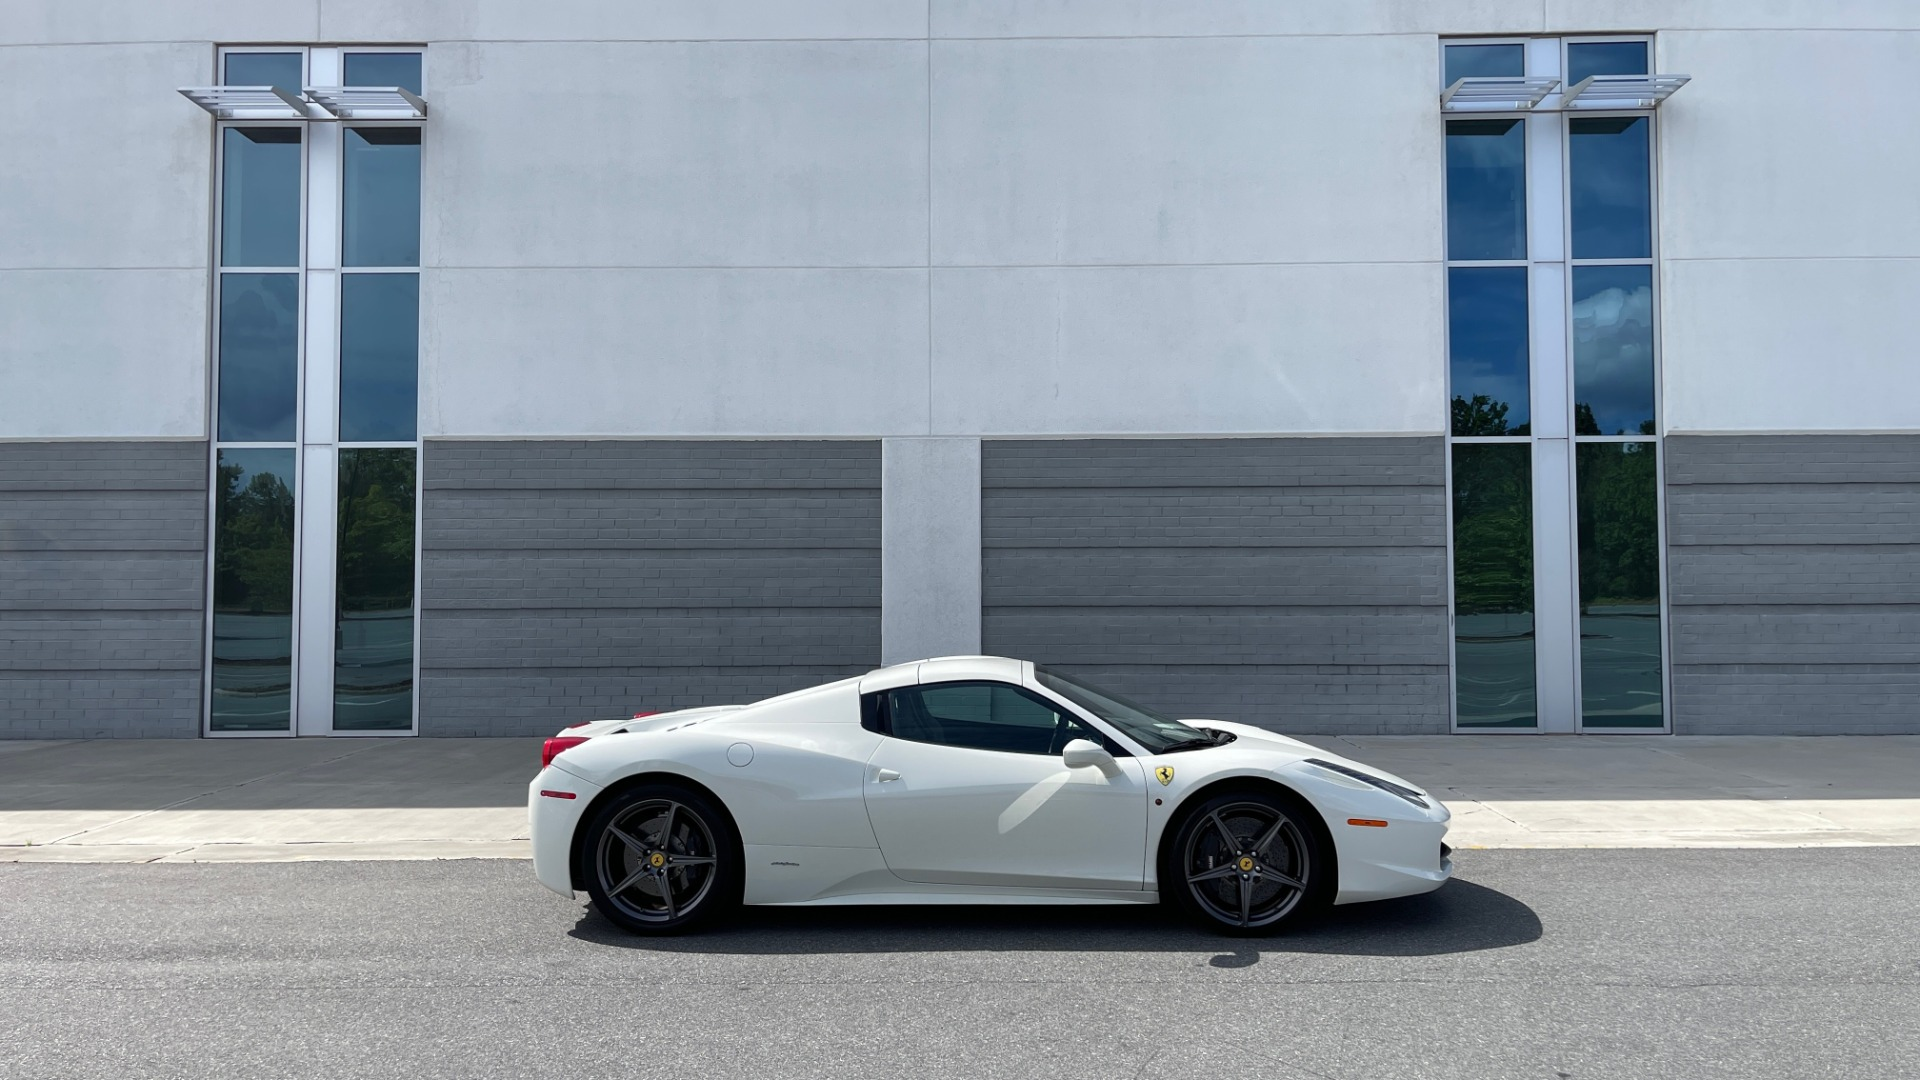 Used 2014 Ferrari 458 ITALIA SPIDER 570HP / F1 AUTO / CF SEATS / CARBON BRAKES / REARVIEW for sale $249,999 at Formula Imports in Charlotte NC 28227 8